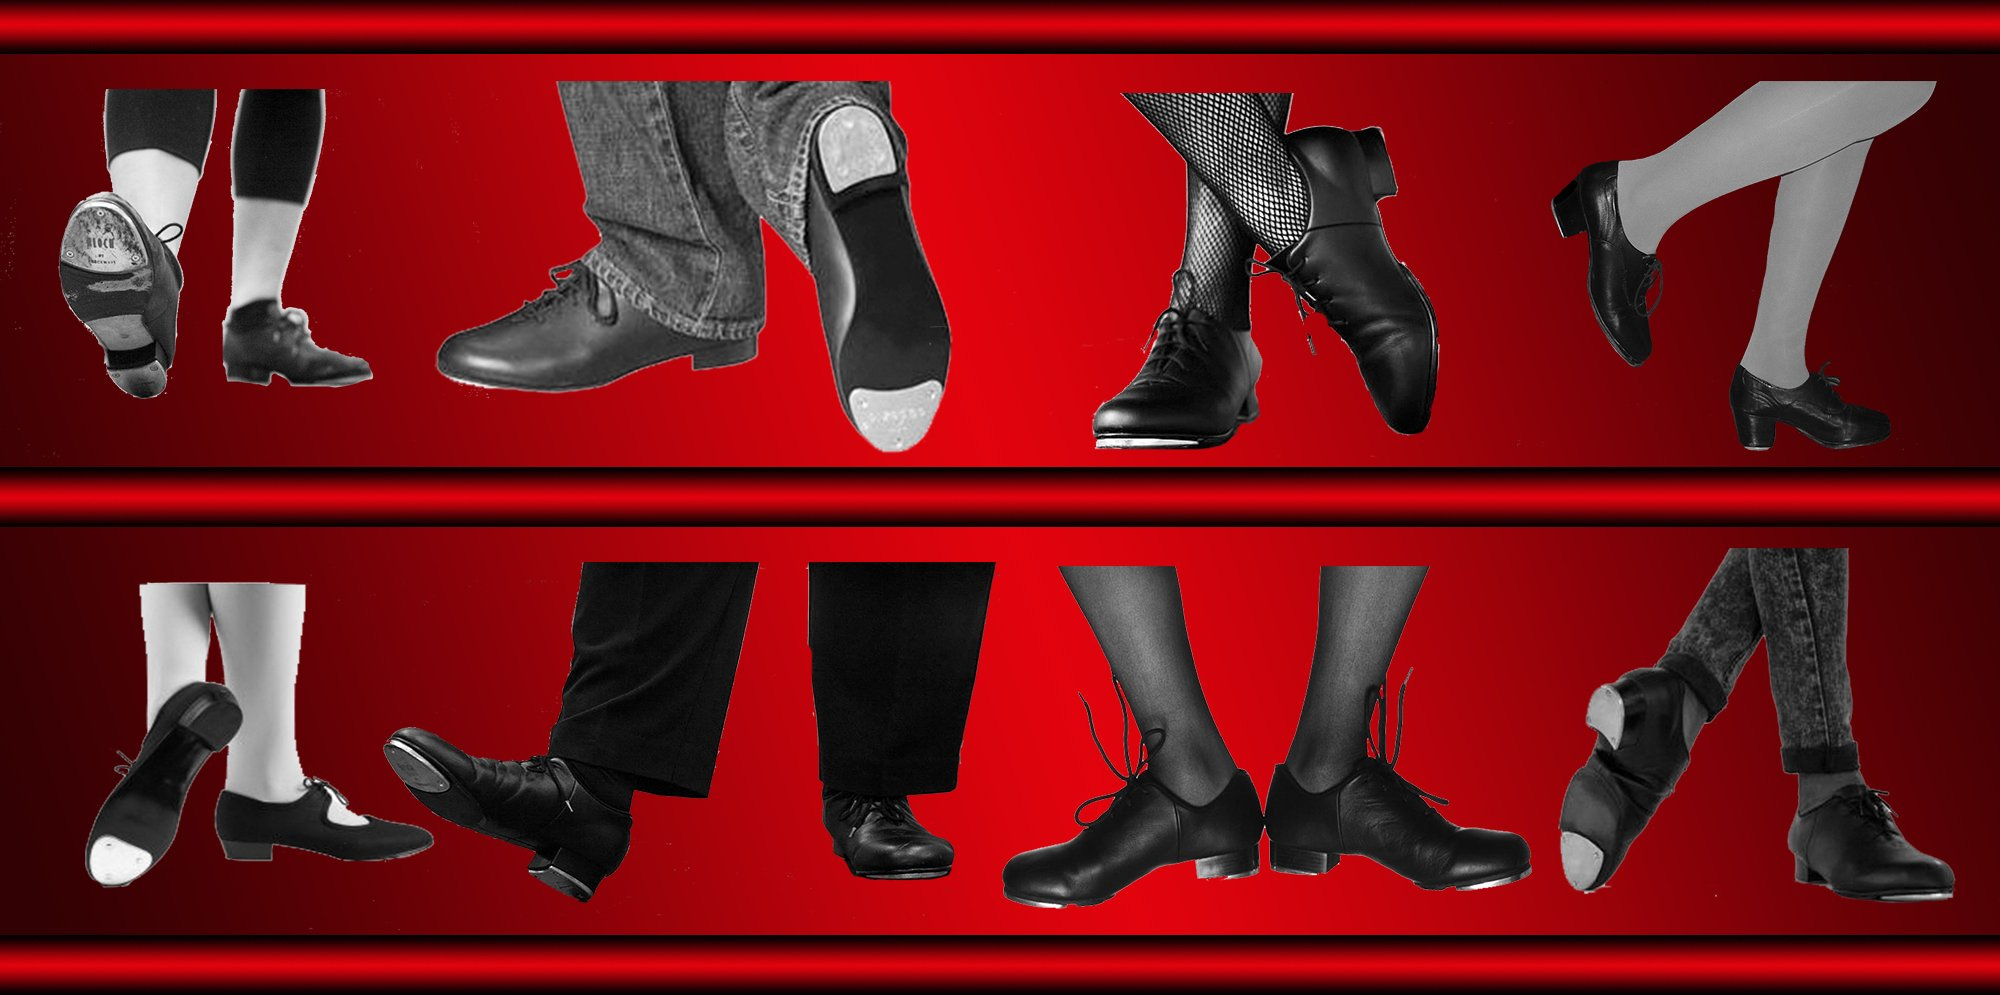 tap shoes on a red background